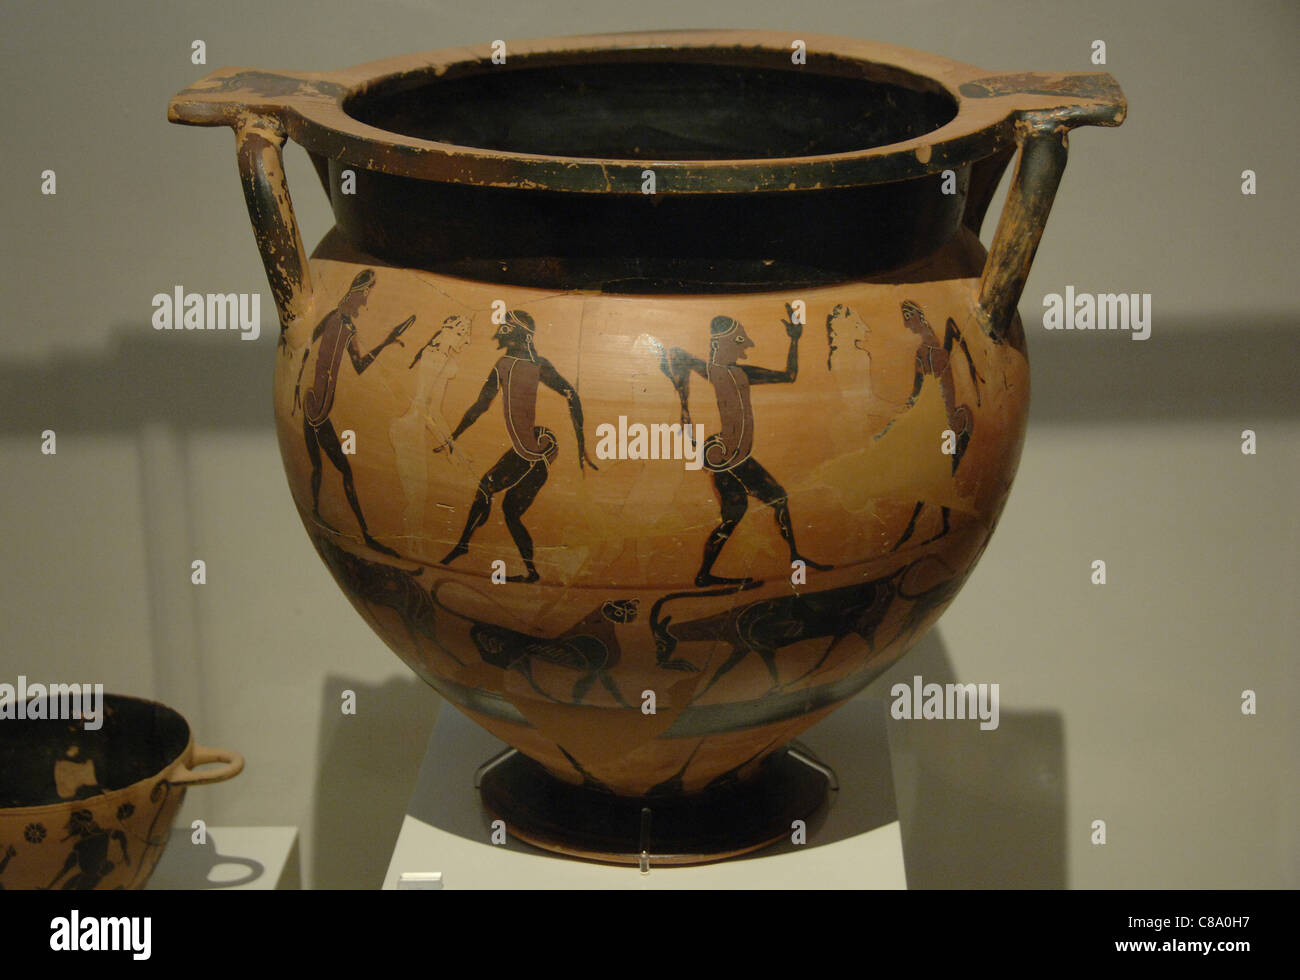 Greek Art. Archaic period. Krater painted with scenes of men and women dancing. - Stock Image